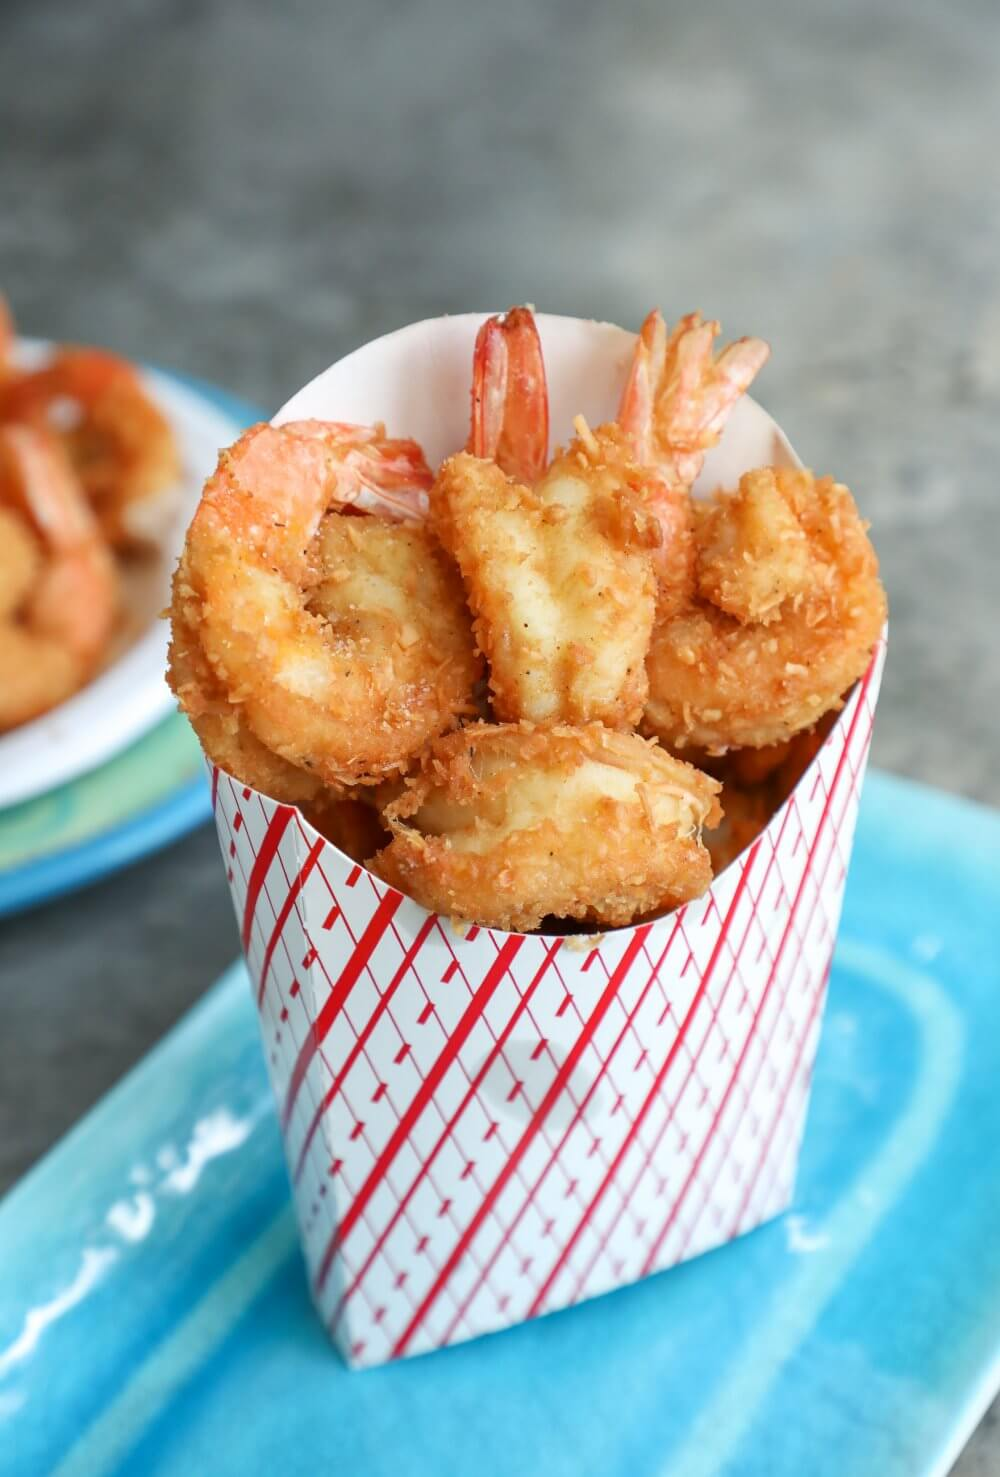 Keto Coconut Shrimp in a red and white striped paper dispenser